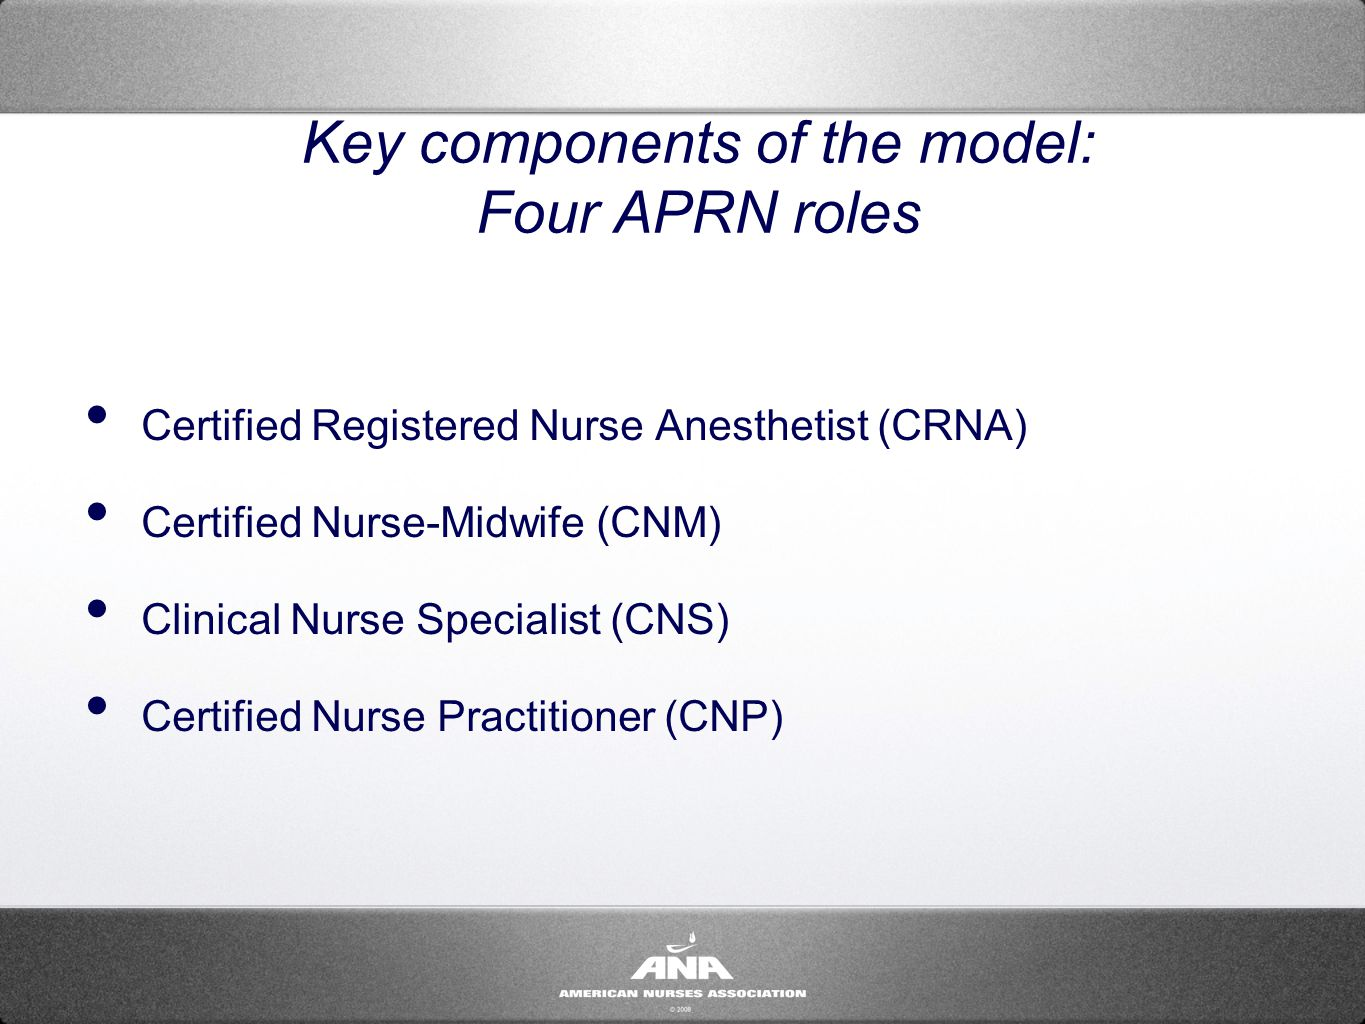 Consensus model for aprn regulation licensure accreditation 9 key components of the model four aprn roles certified registered nurse anesthetist crna certified nurse midwife cnm clinical nurse specialist cns xflitez Gallery